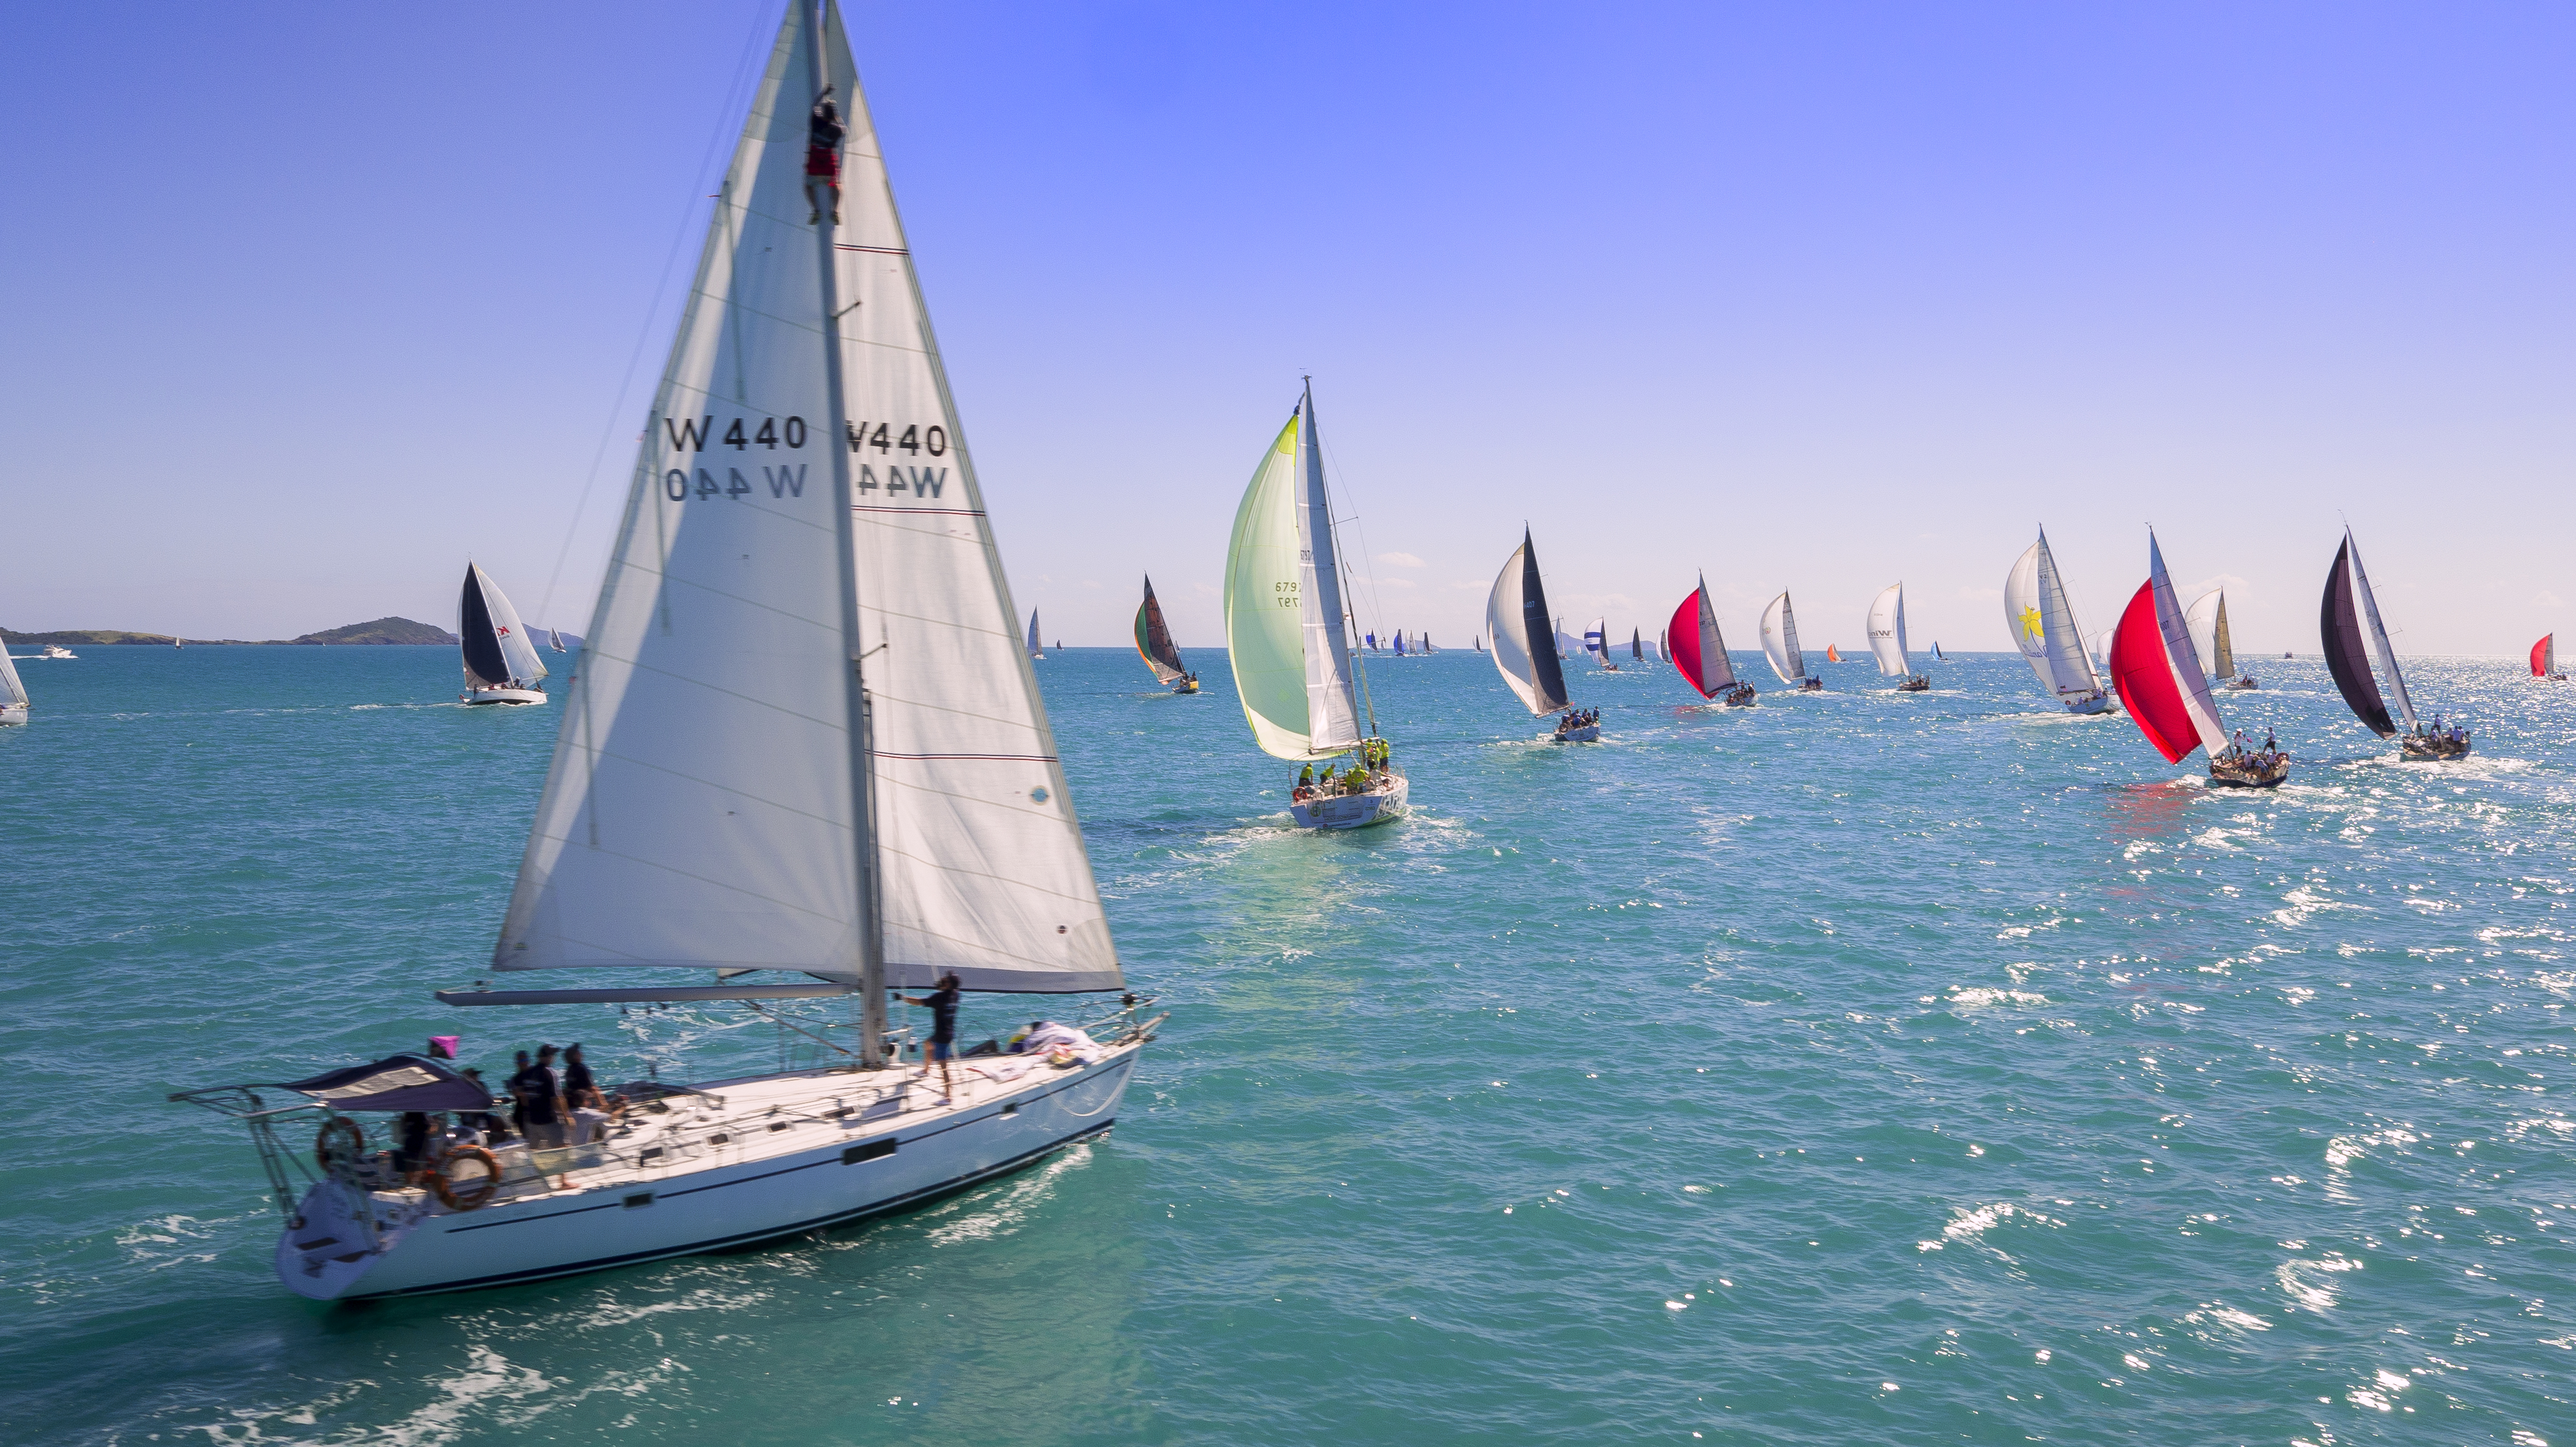 Sailing at Airlie Beach Race Week